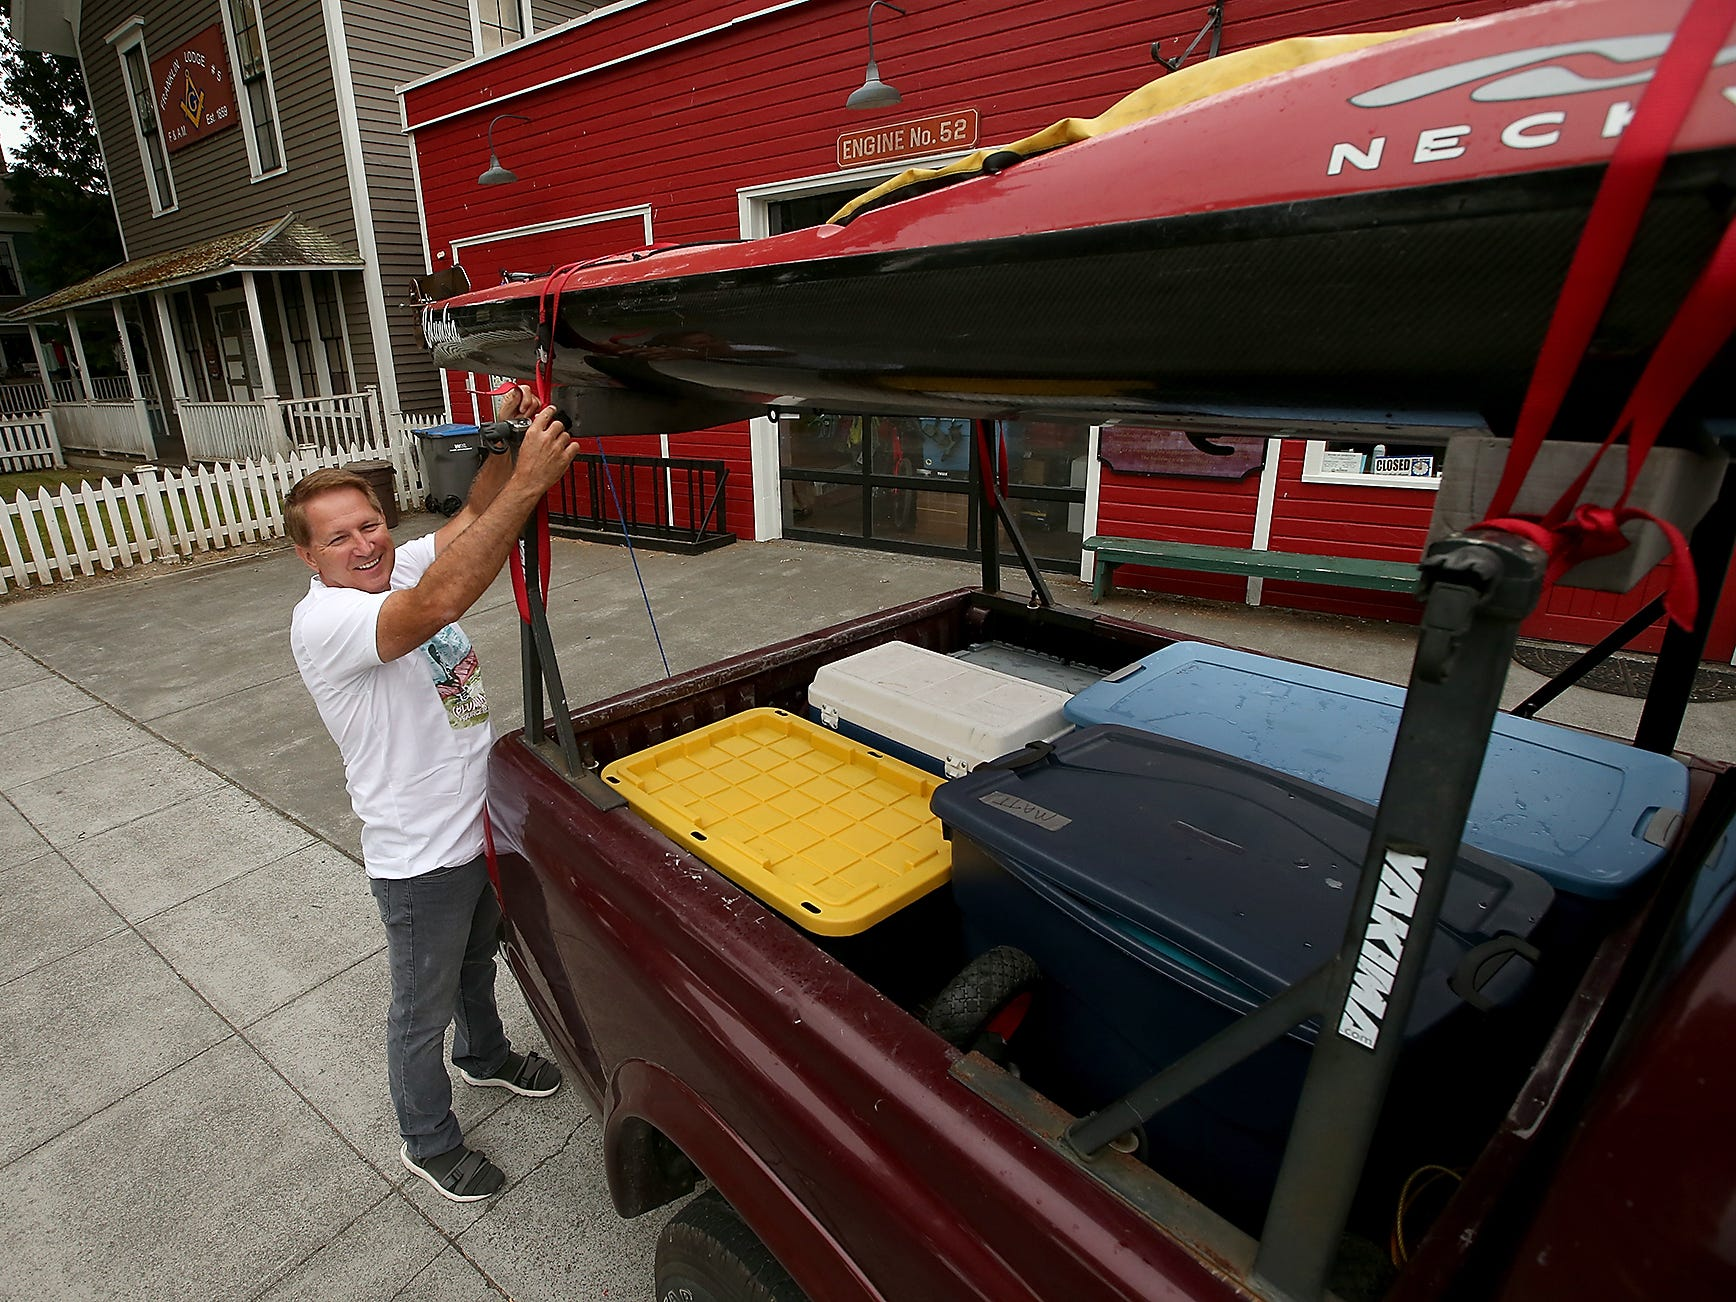 John Kuntz, owner of Olympic Outdoor Center, checks the tie down of one of his kayaks atop of his truck one last time before heading out from Port Gamble to the Columbia River, on Wednesday, August 1, 2018. Kuntz's Eri's Adventure will take him 1,250 miles from the source of the Columbia River to the Pacific Ocean.